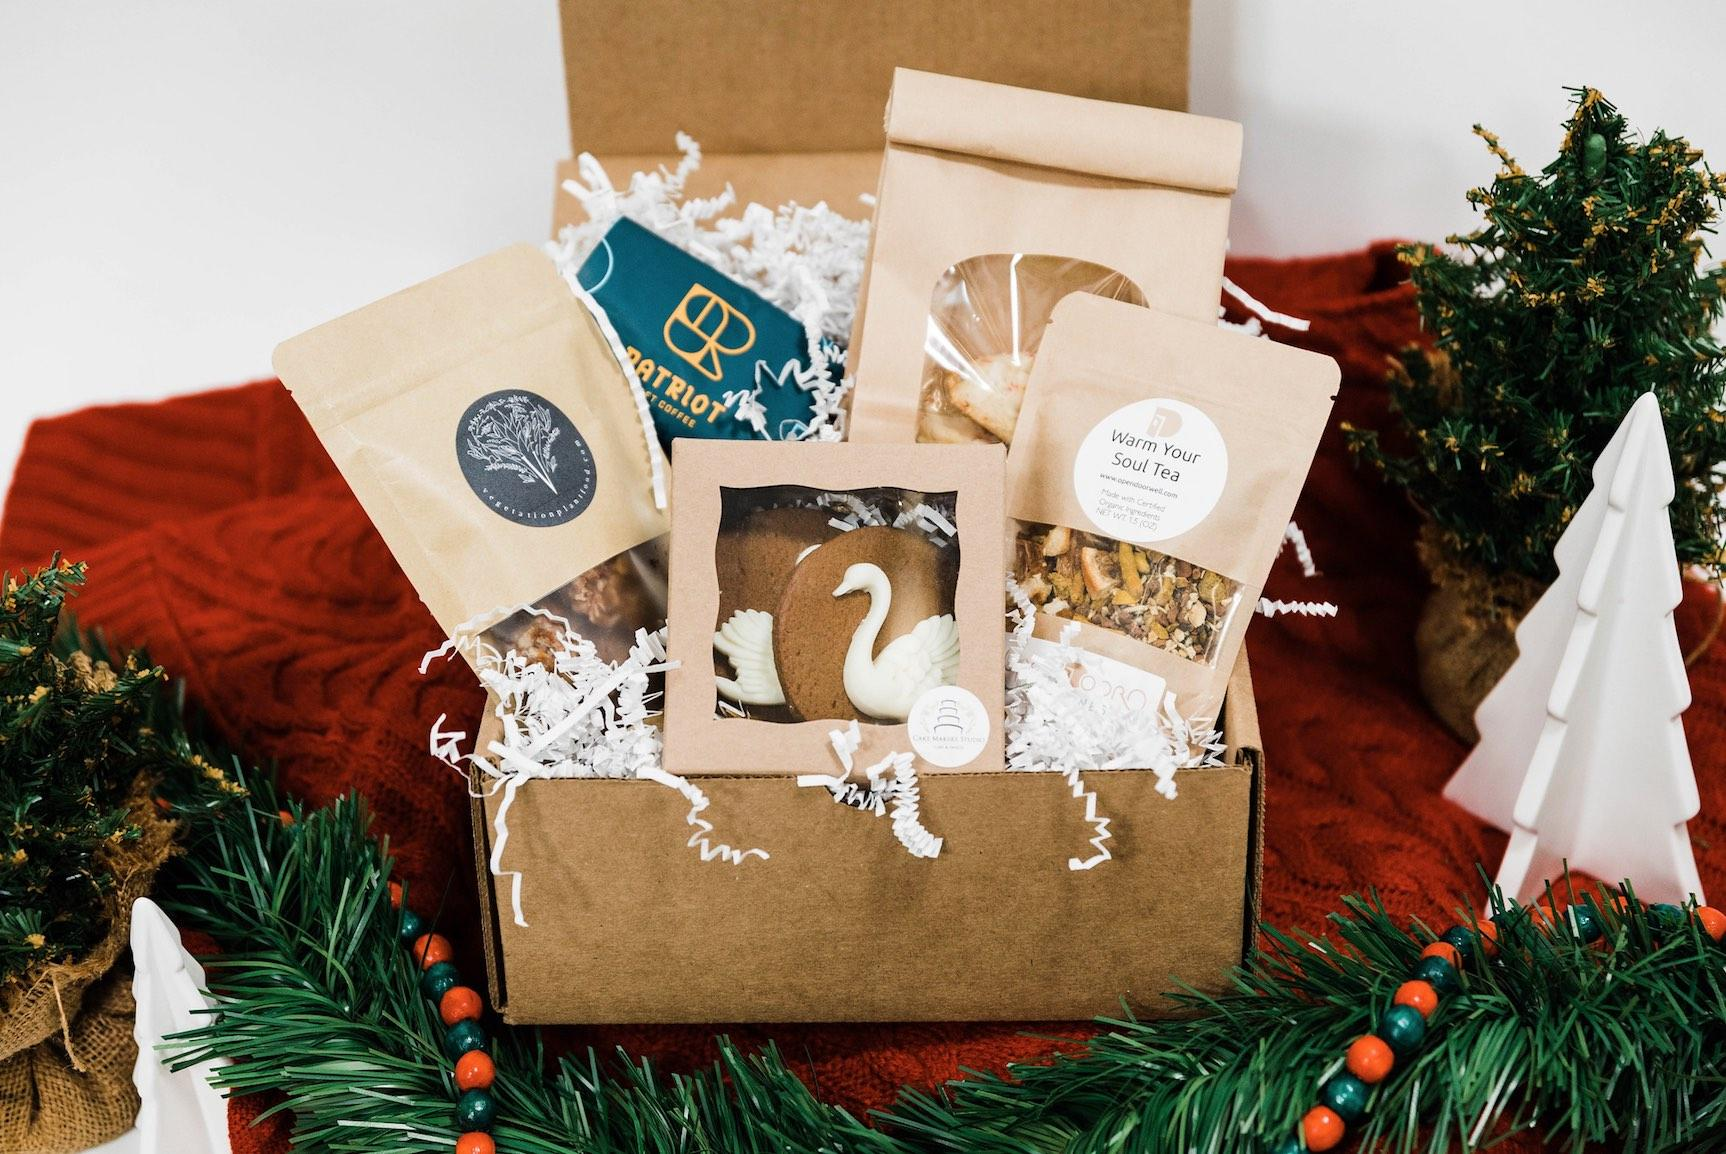 Small gift box with assortment of treats and goodies